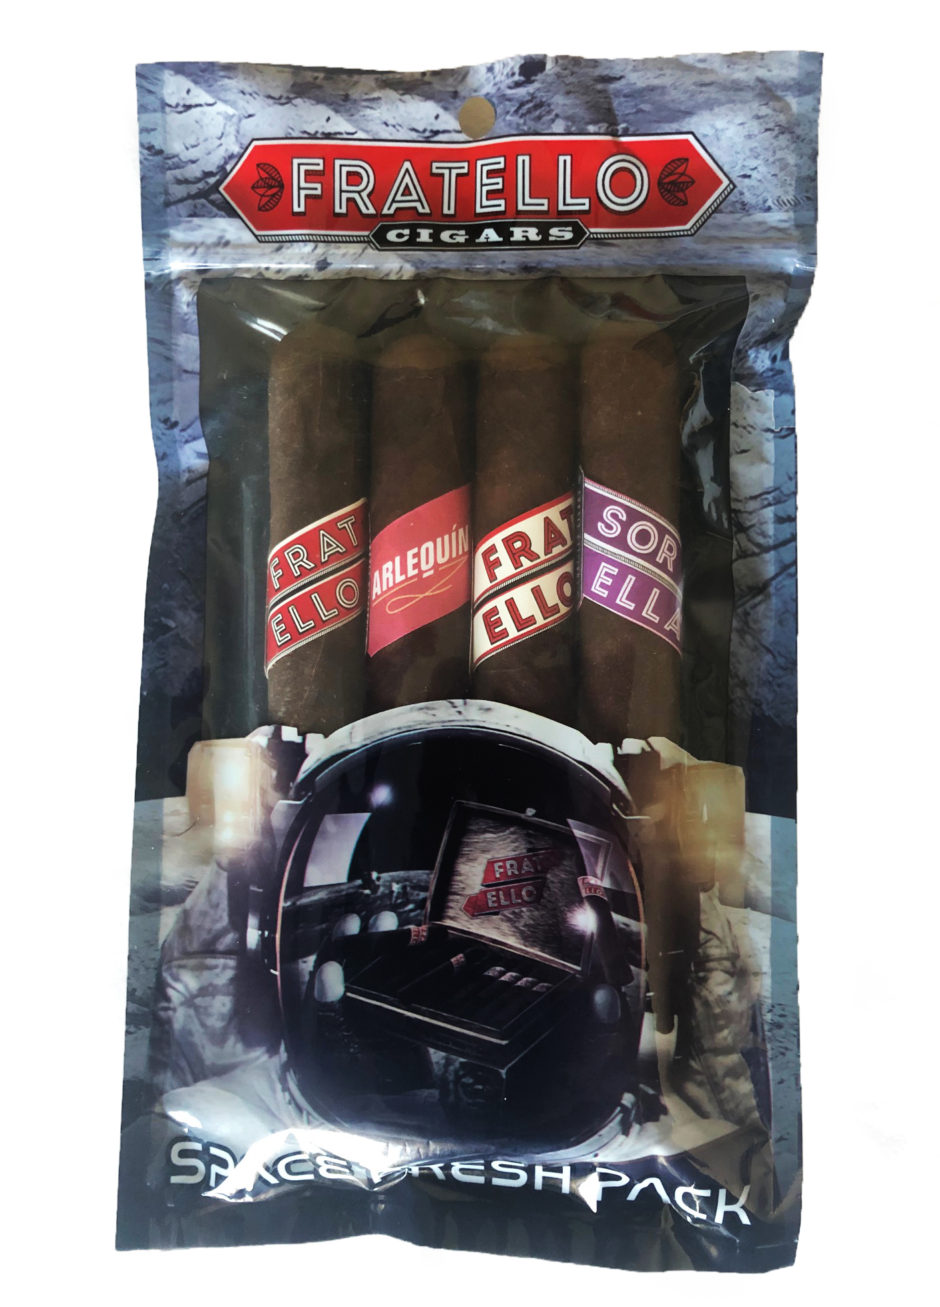 Fratello cigars SPACE PACK cigars